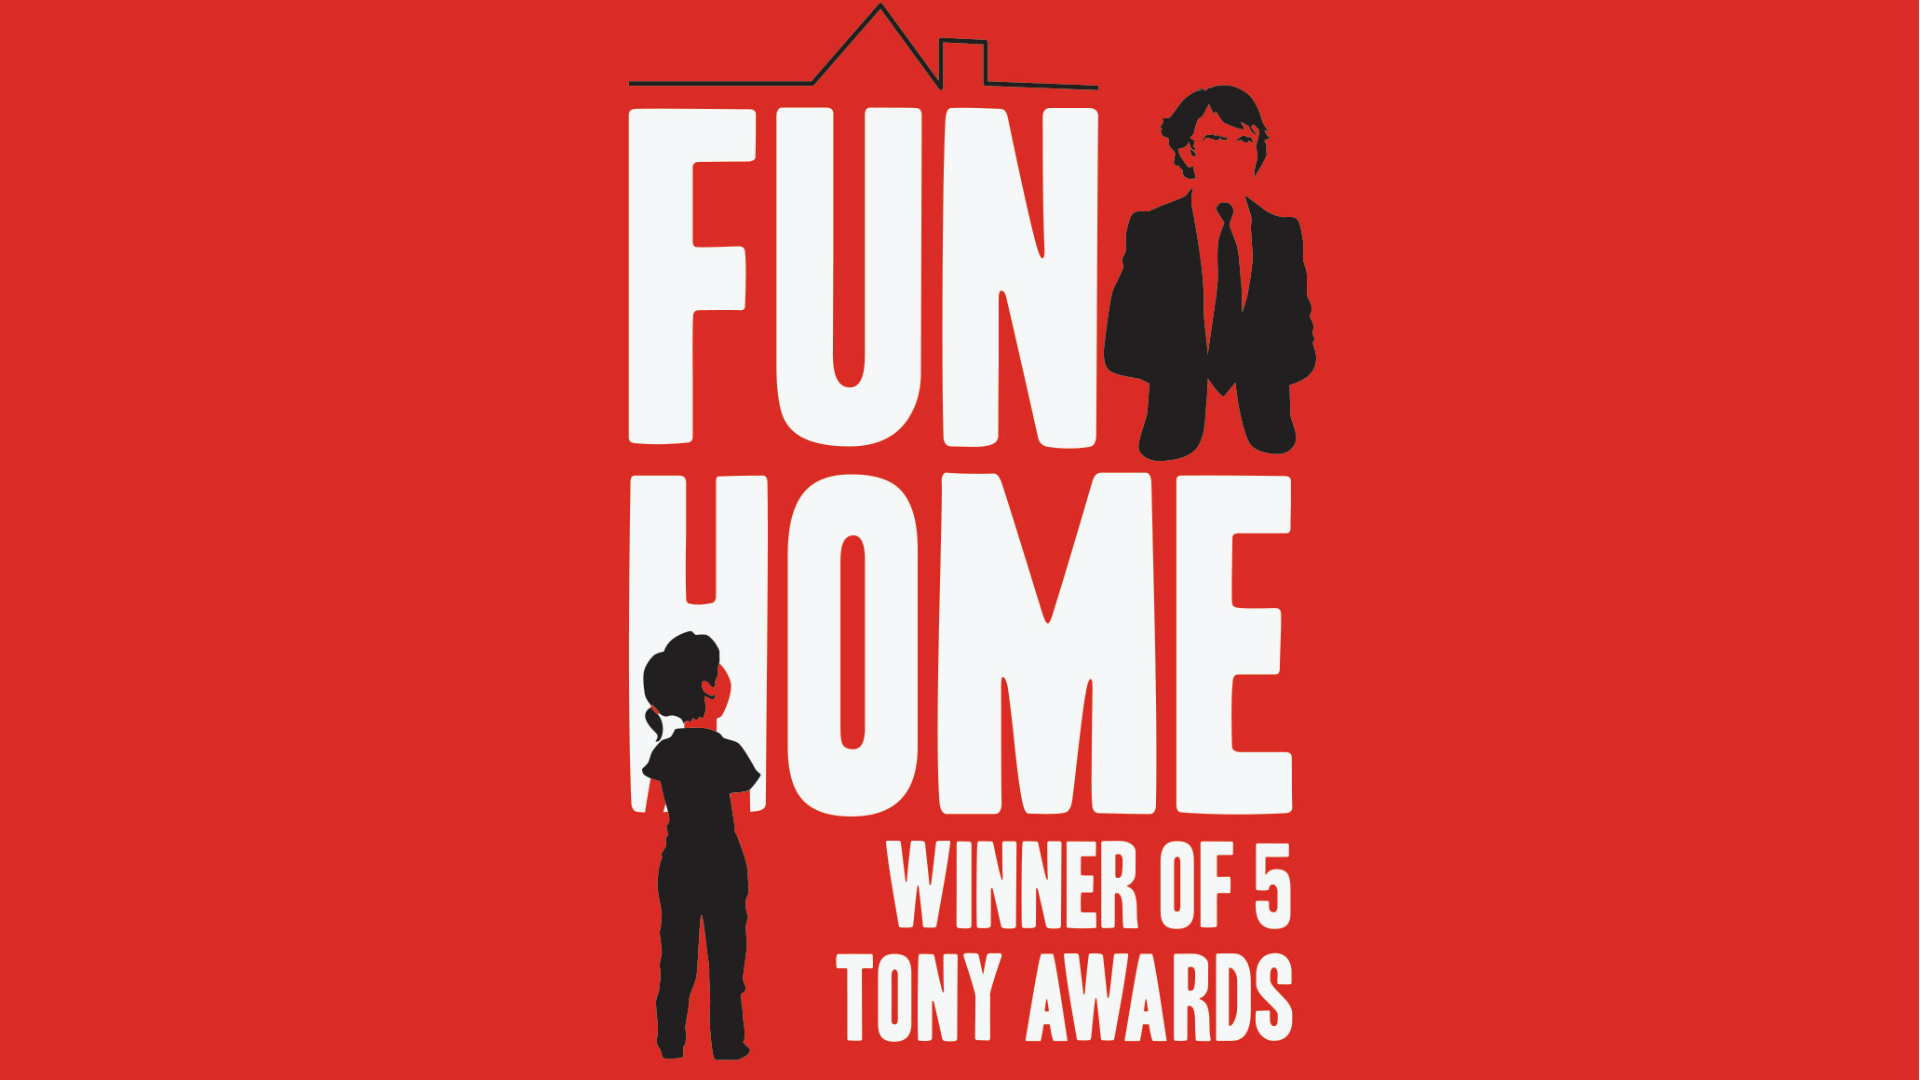 Fun Home at the Young Vic. Image courtesy of the Young Vic.